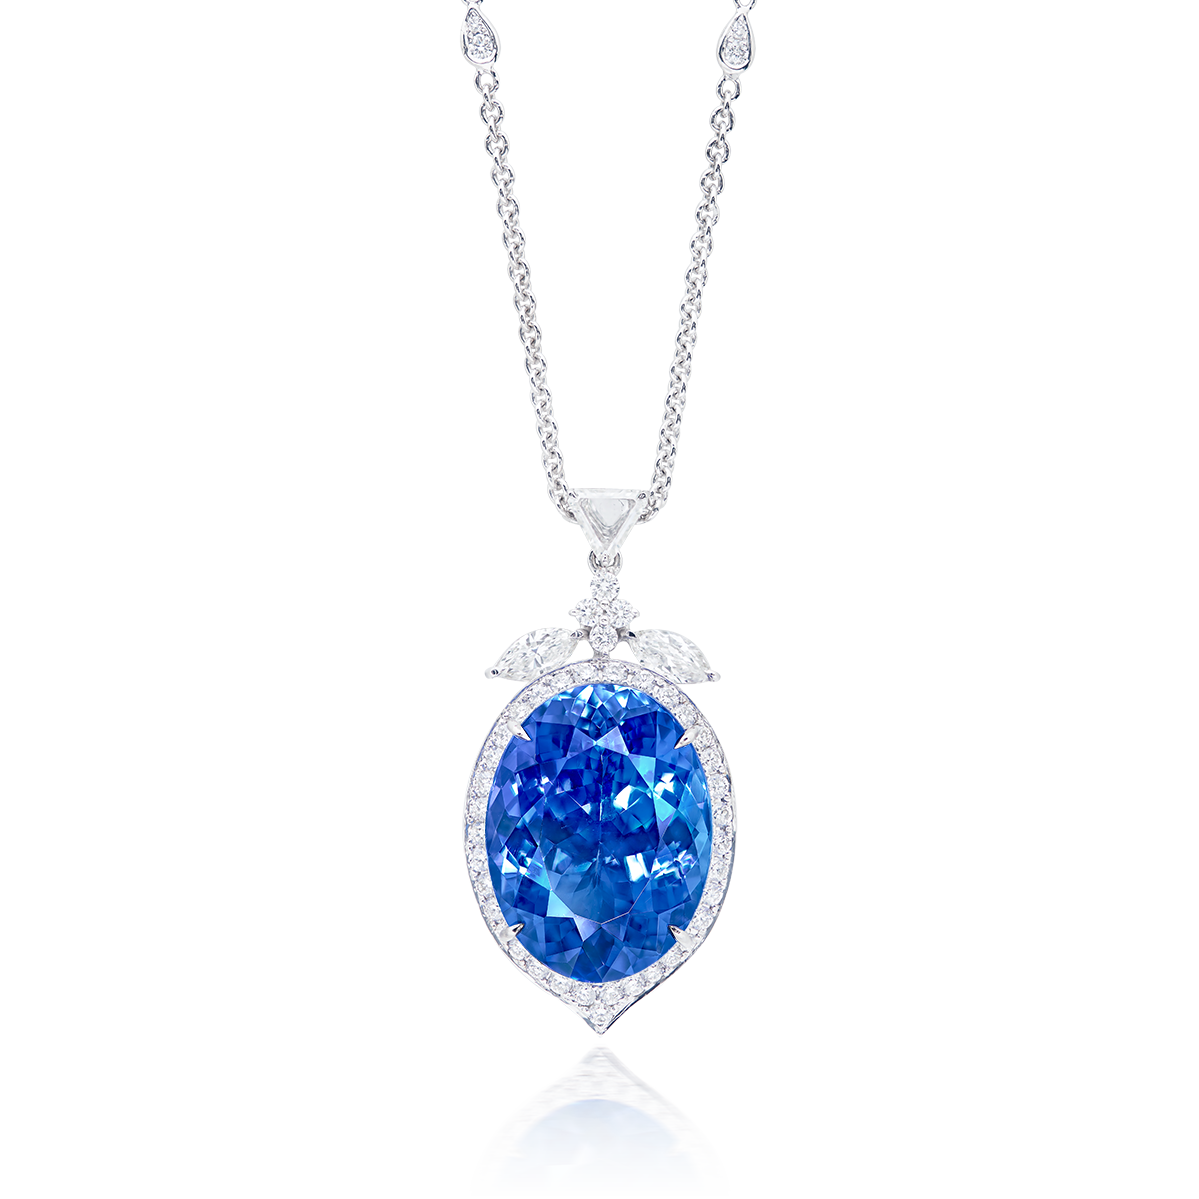 26.27克拉 天然丹泉石鑽石墜鍊